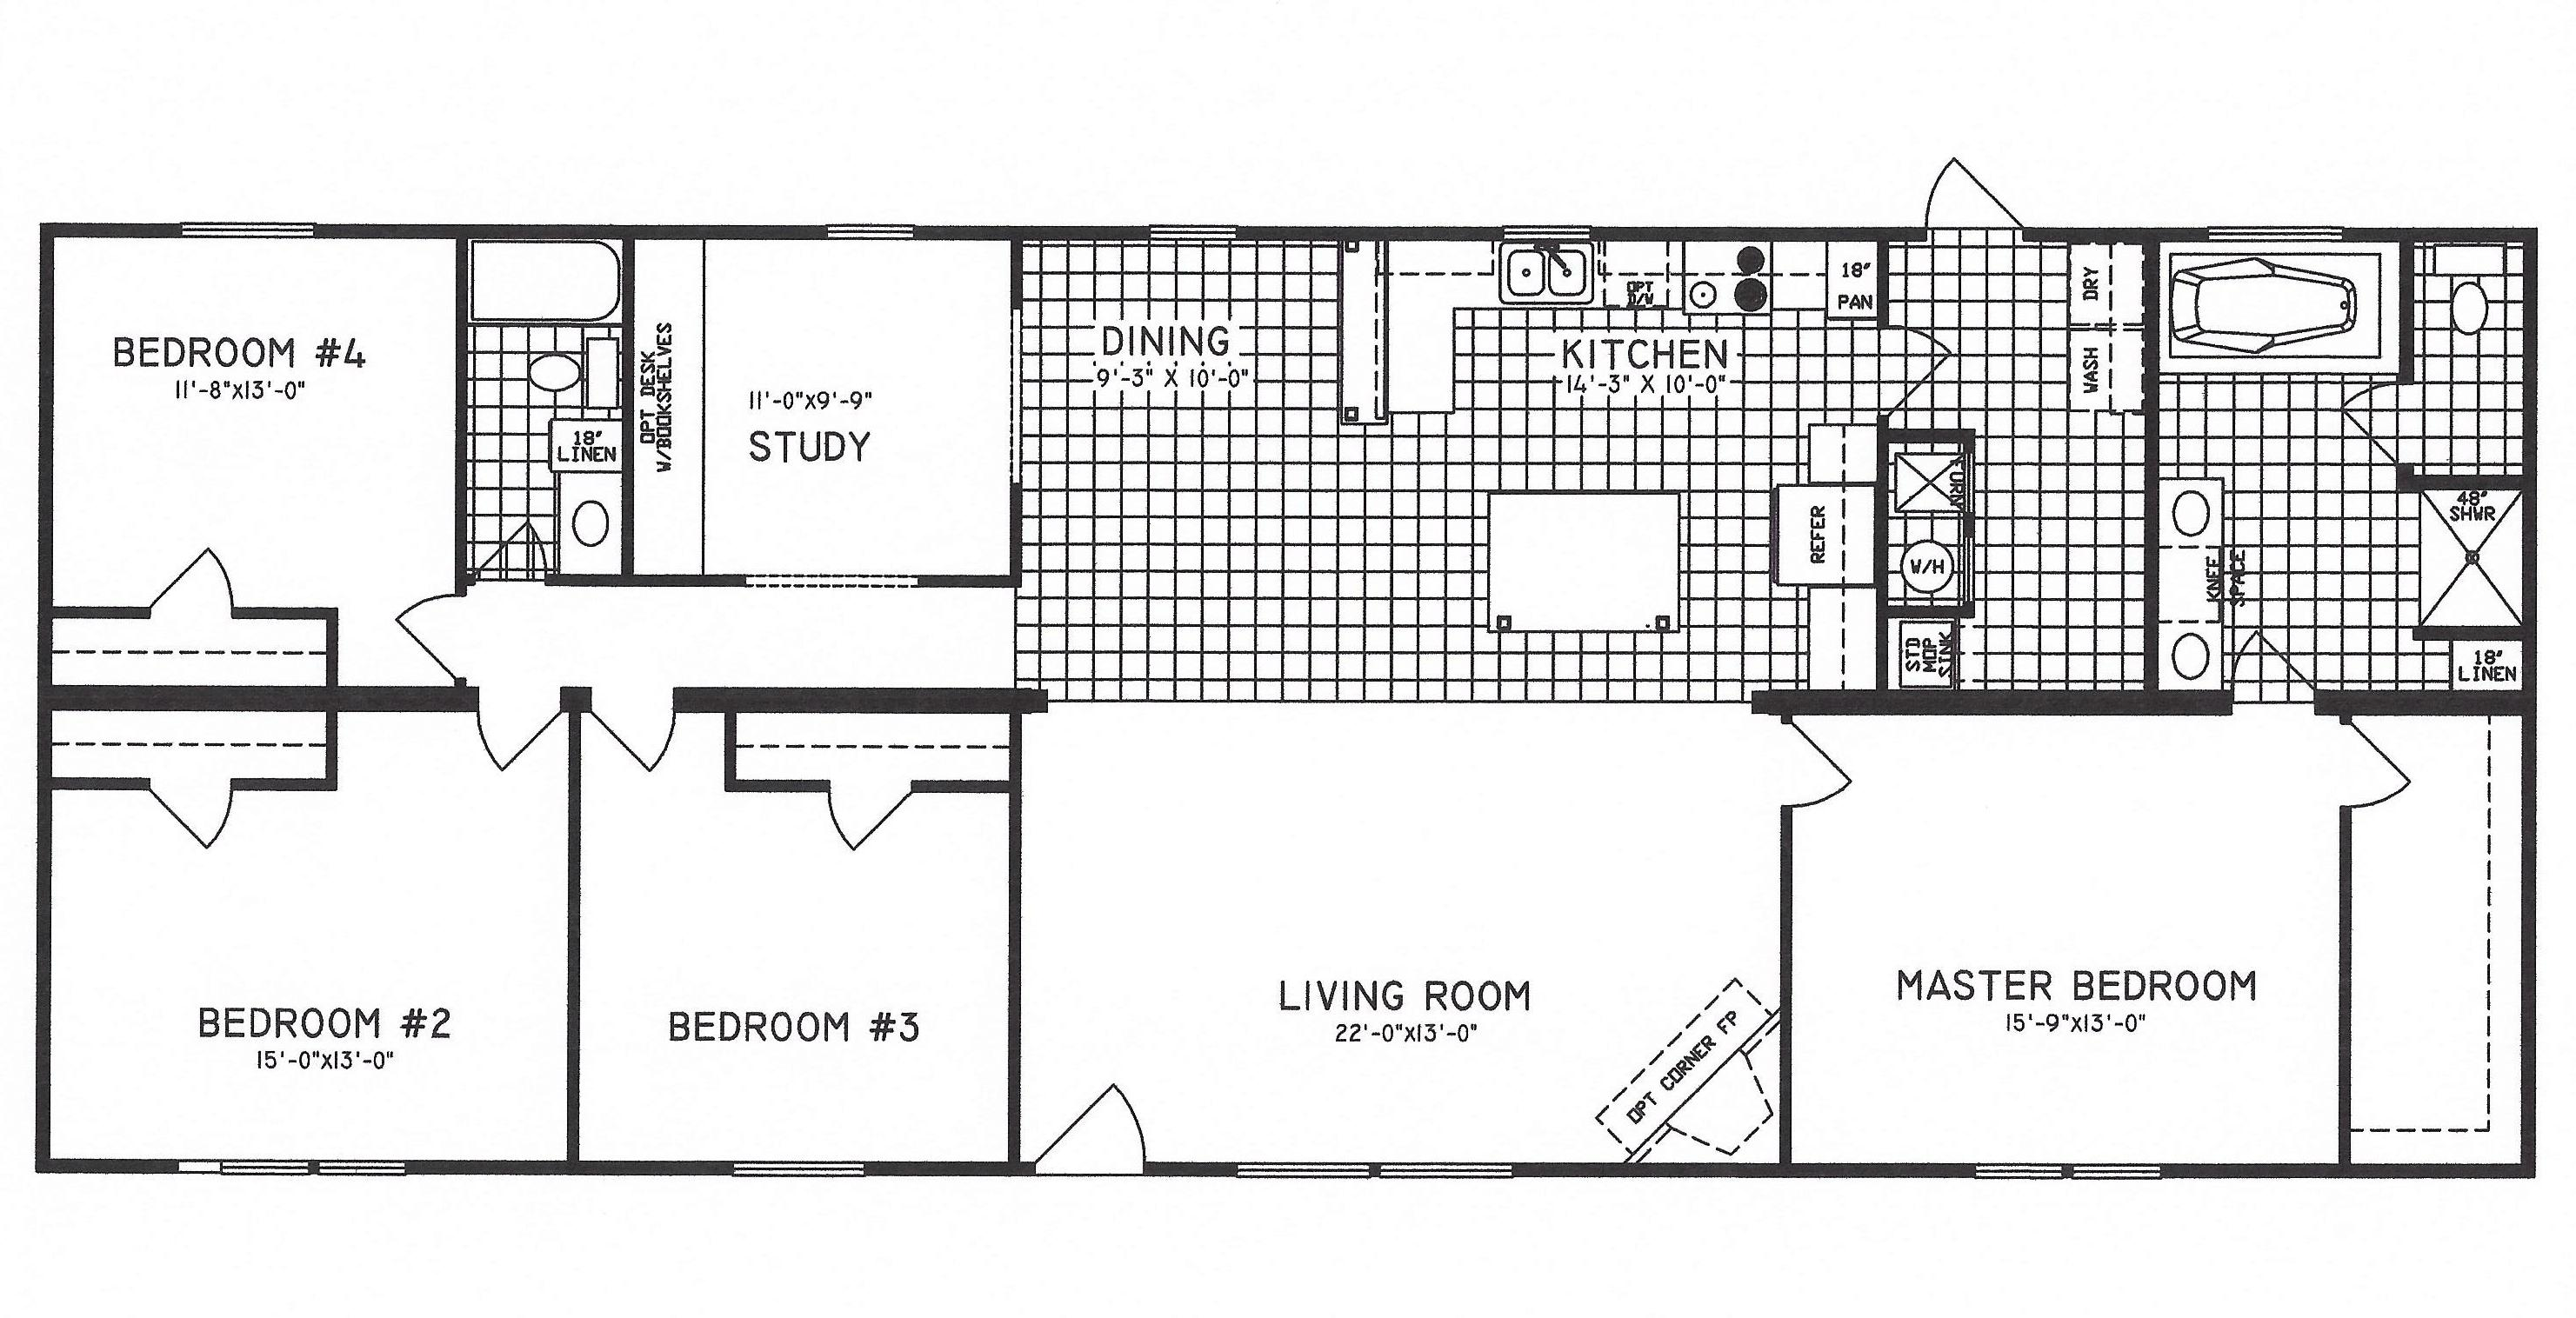 4 bedroom floor plan c 9207 hawks homes manufactured newly redesigned 4 bedroom with a large study that can be converted to a 5th bedroom open layout with a large kitchen and living room with a fire place